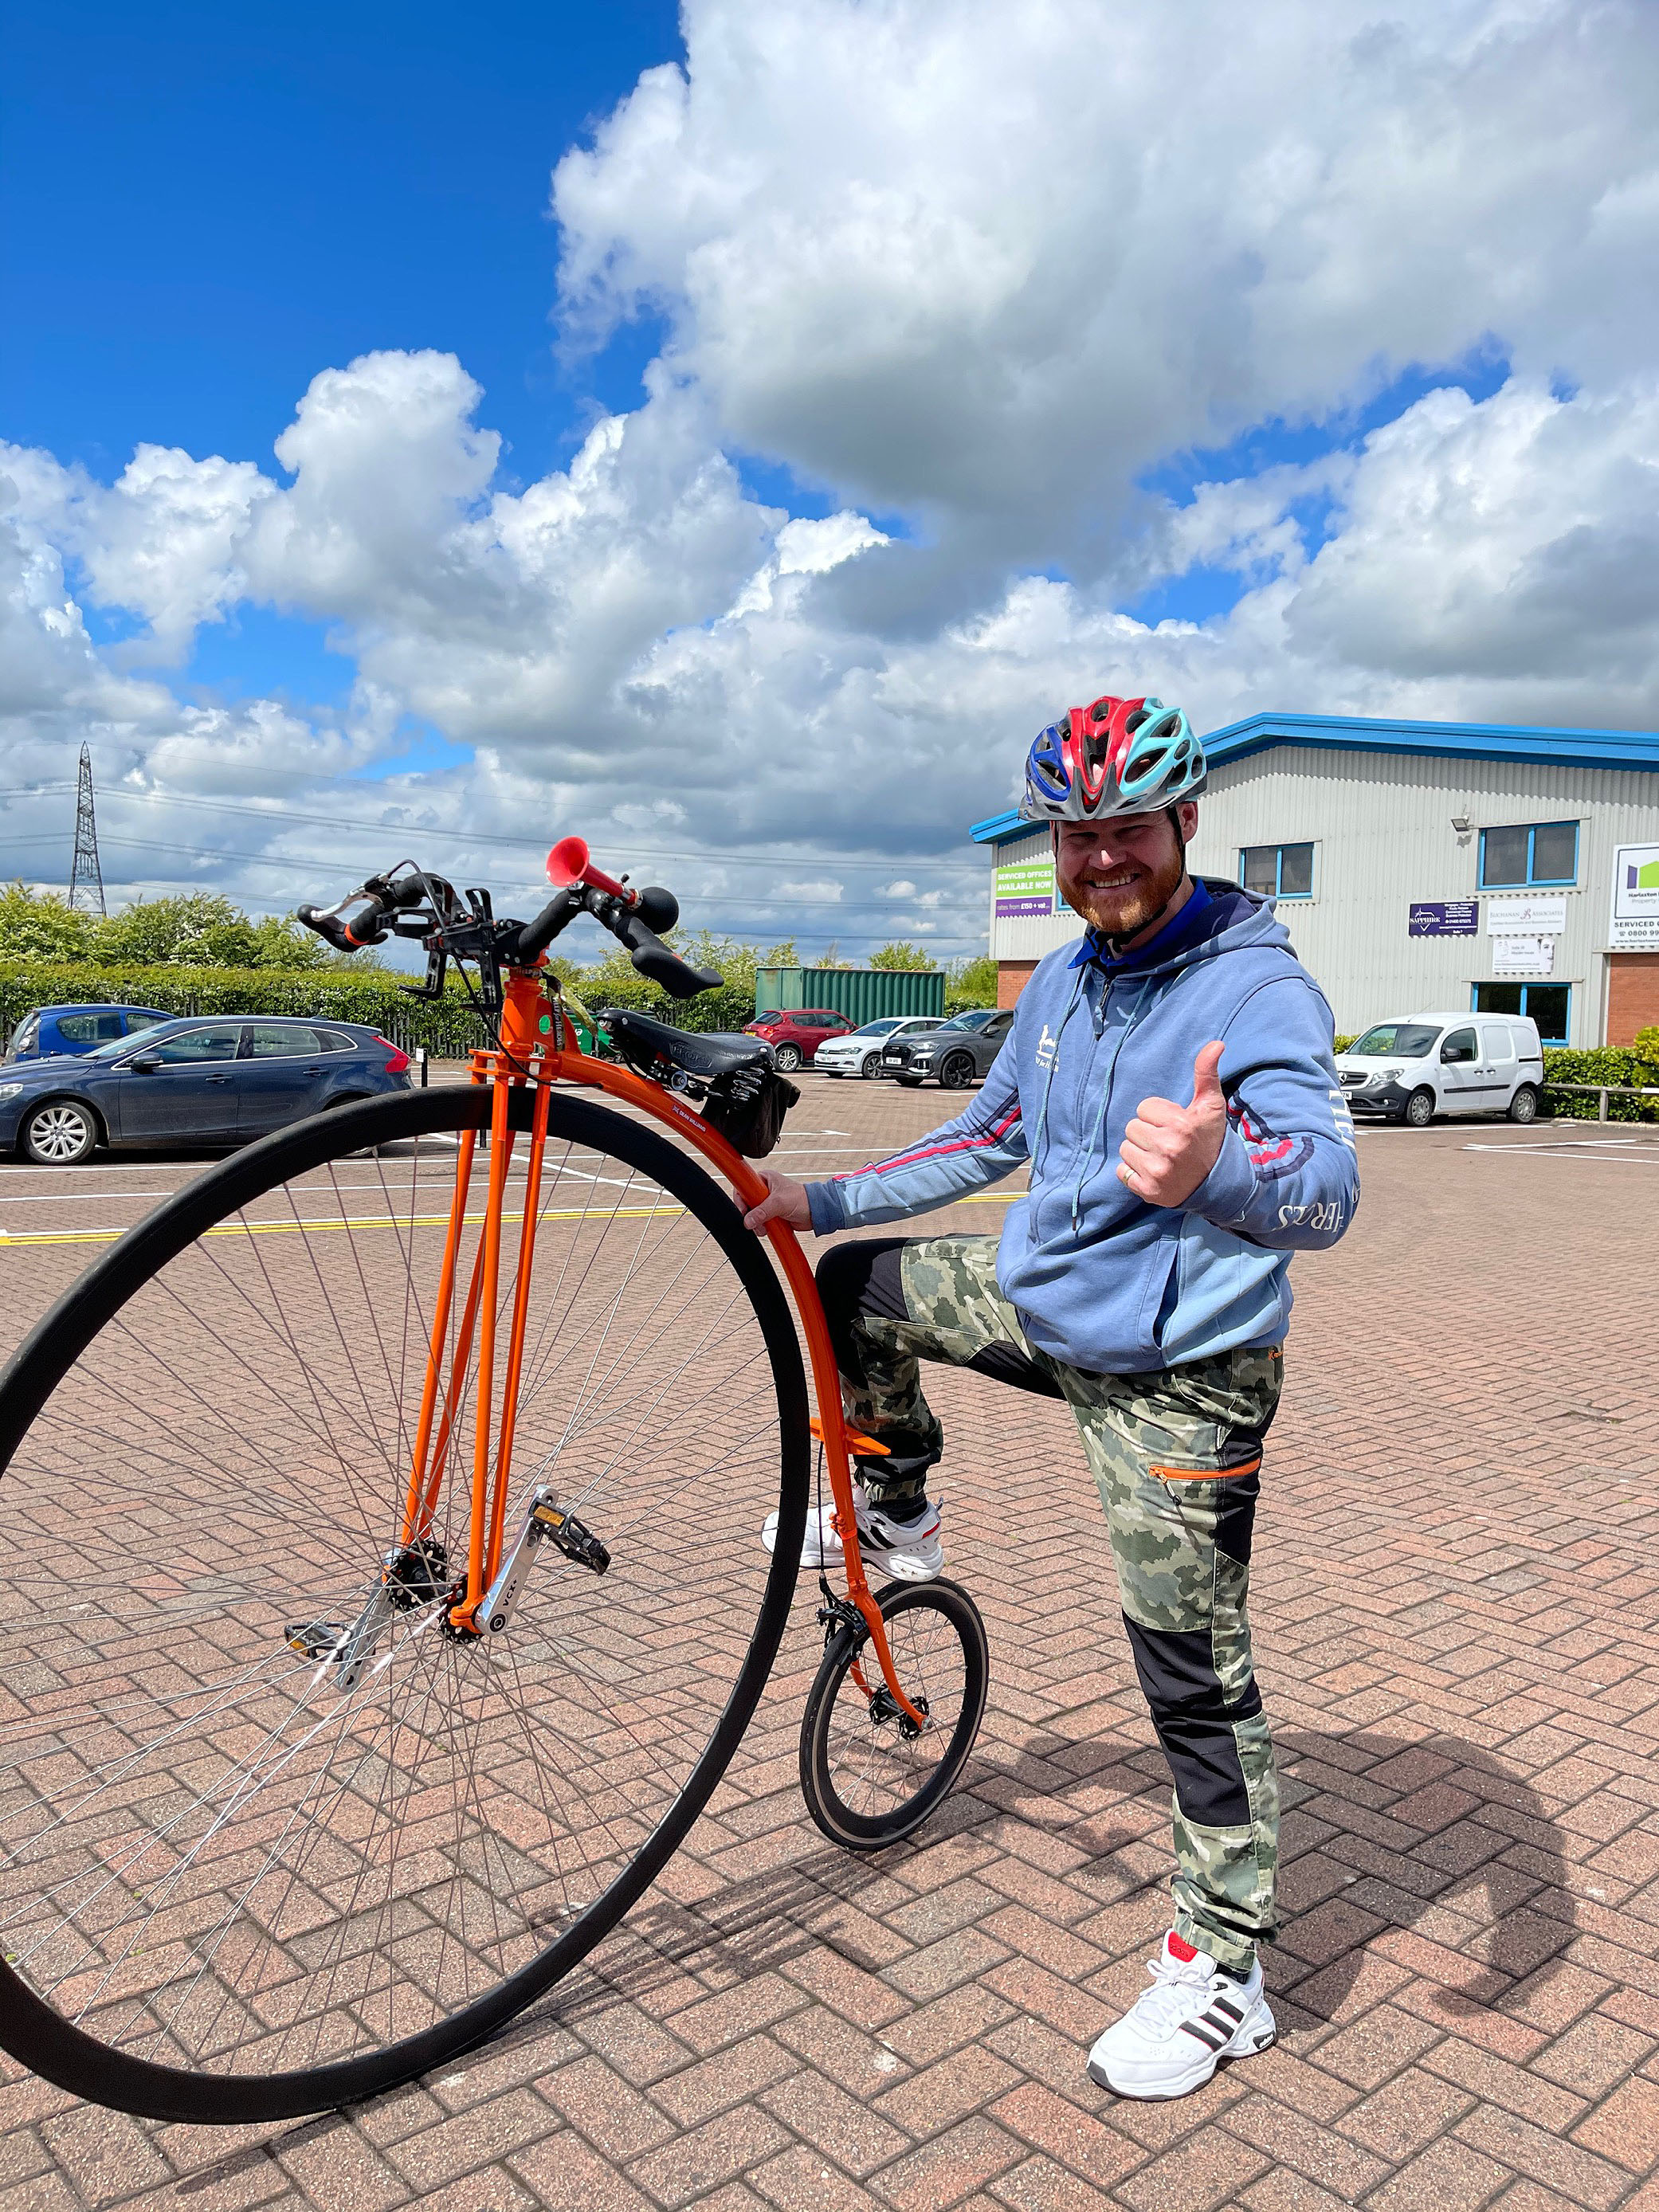 'On your bike'… or should we say 'On your Penny Farthing'